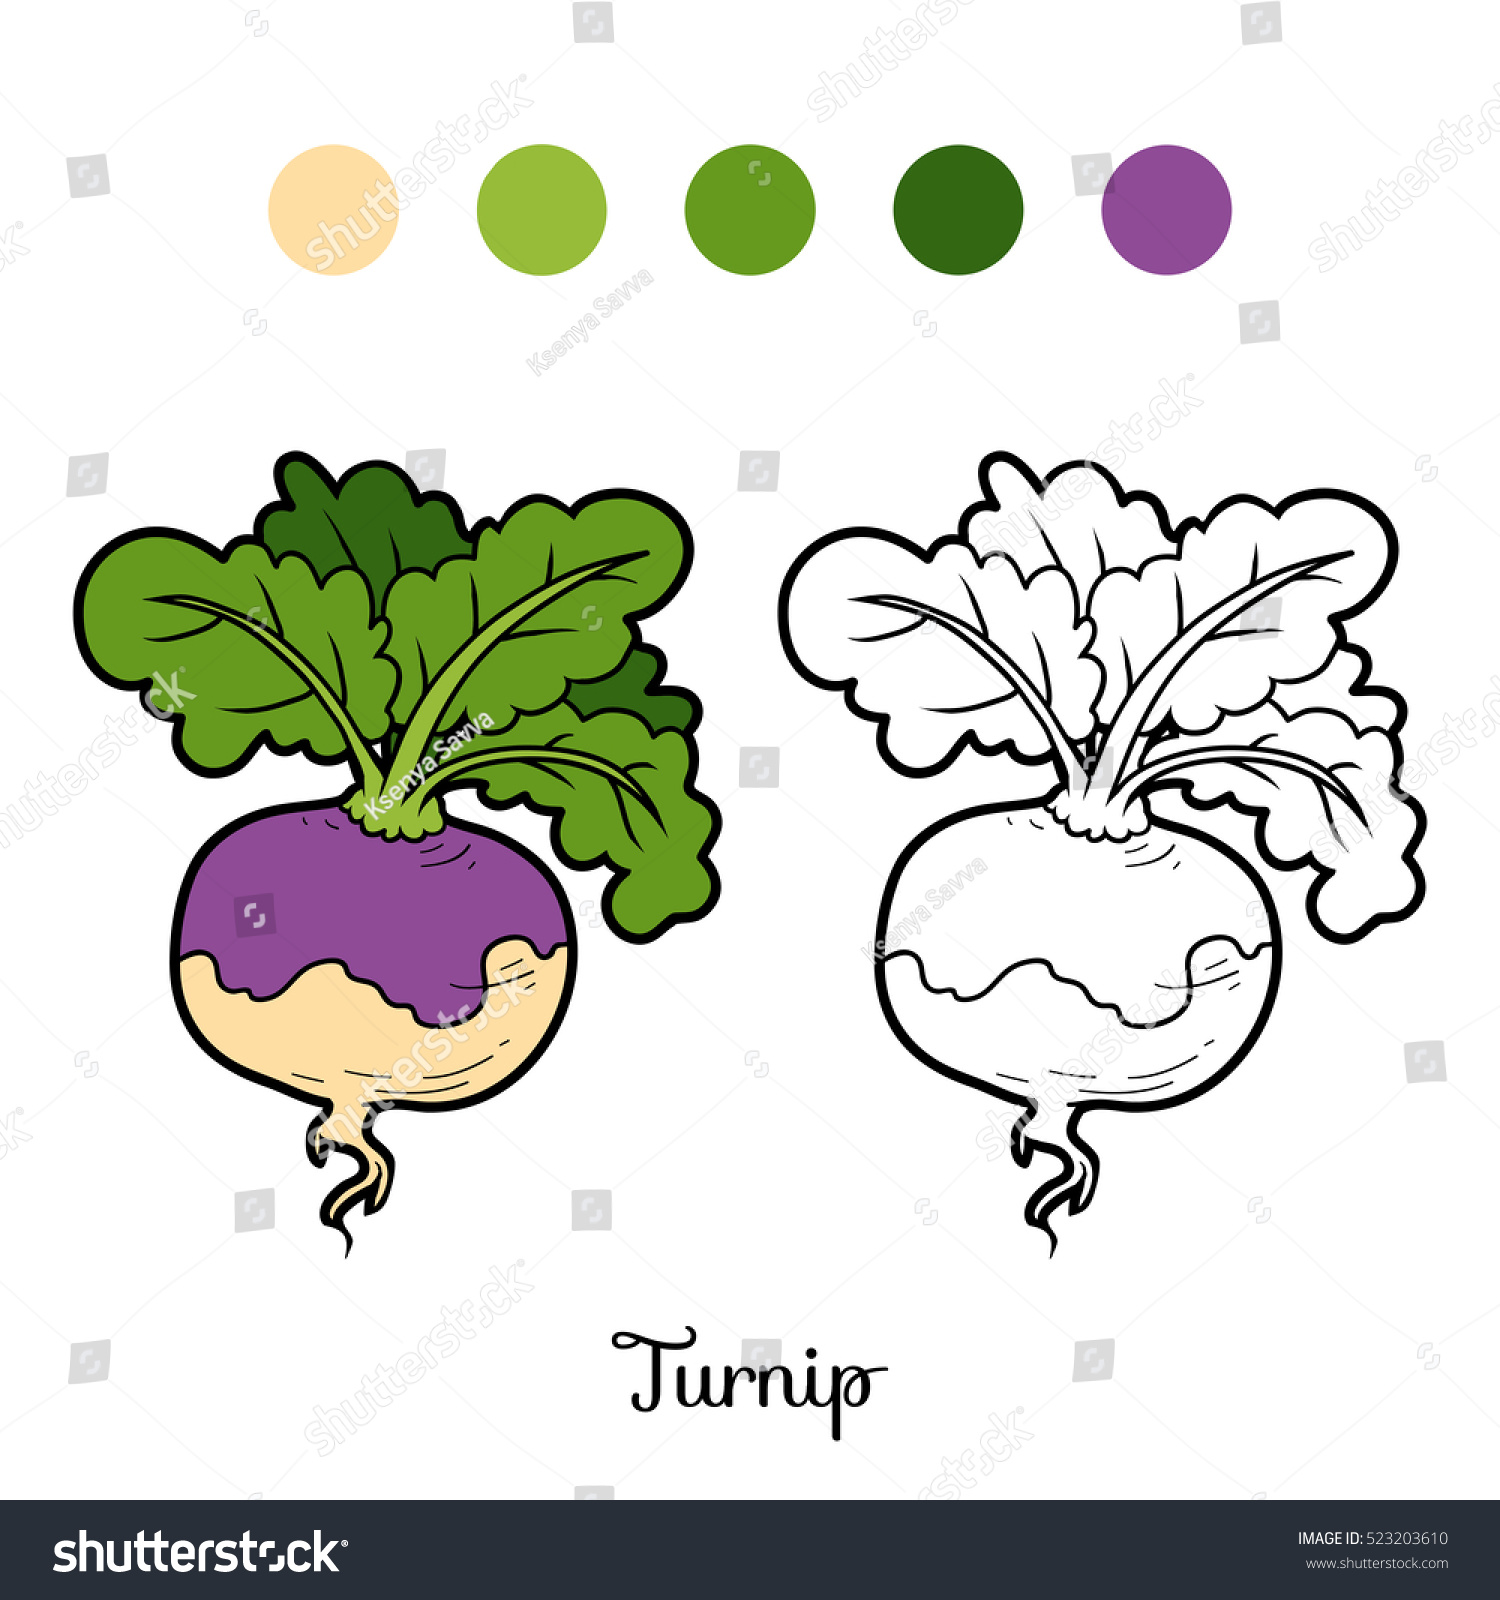 Coloring Book For Children Vegetables Turnip